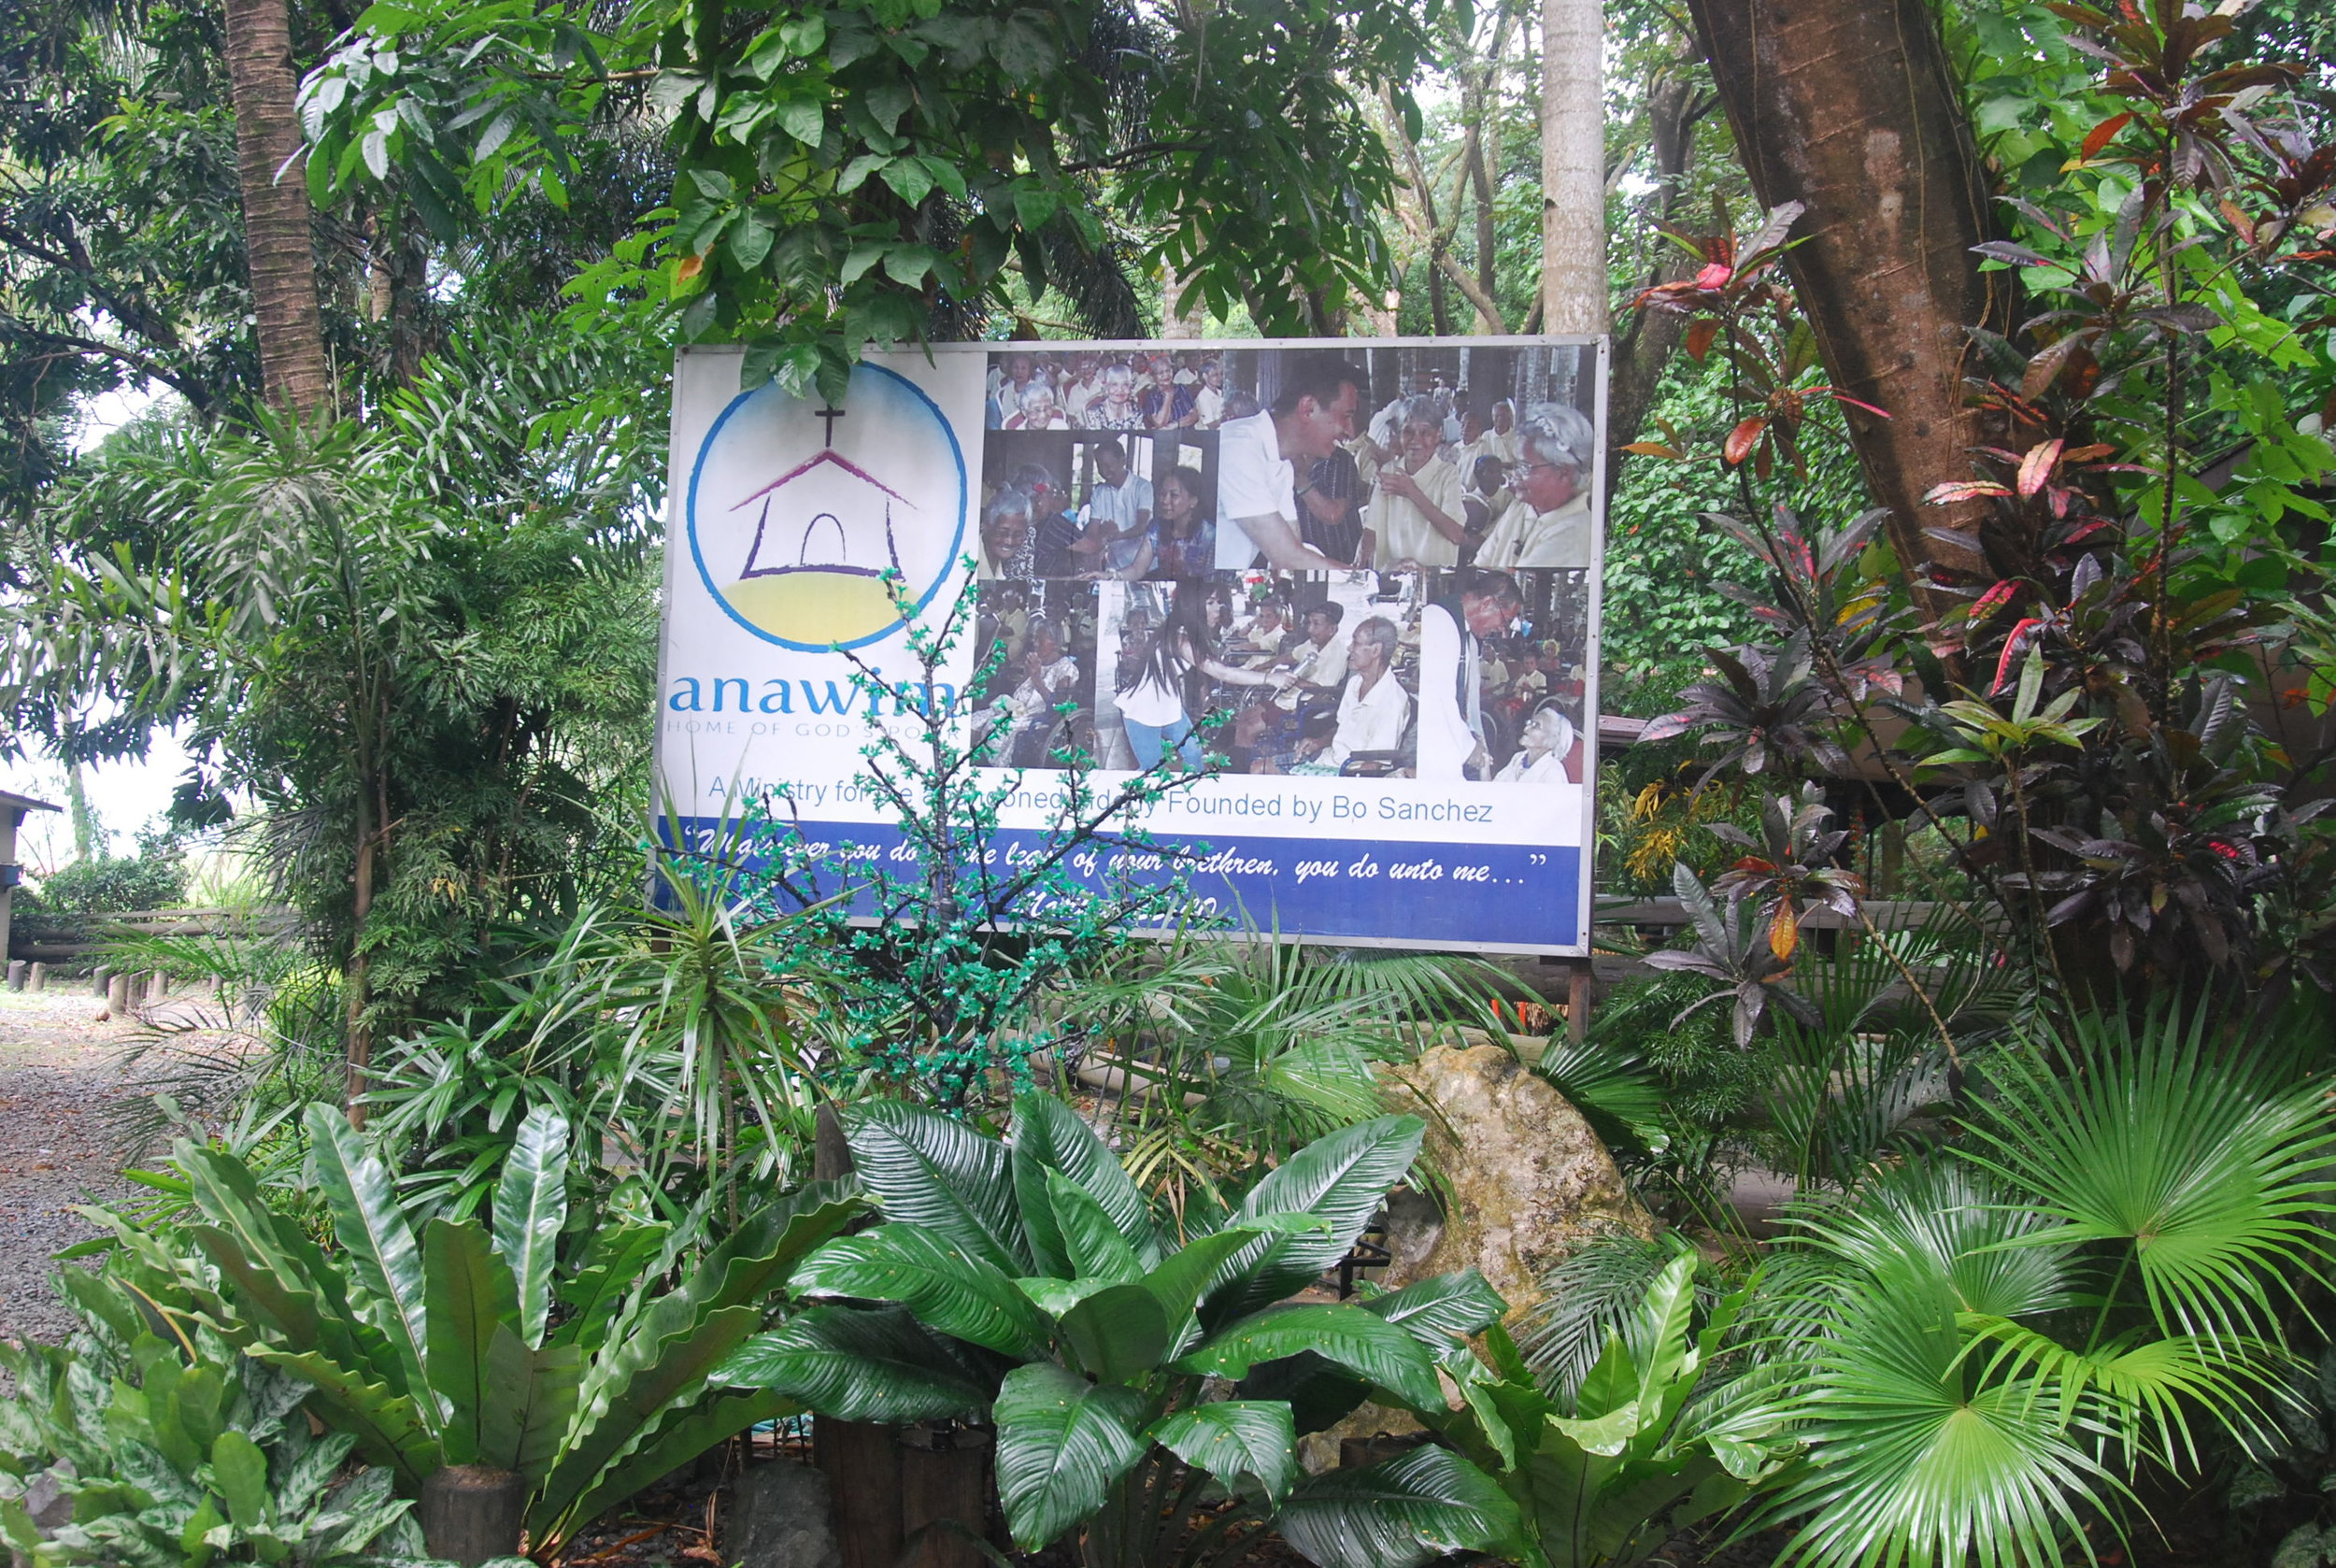 A billboard at the entrance identifies the place as a sanctuary for abandoned elderlies